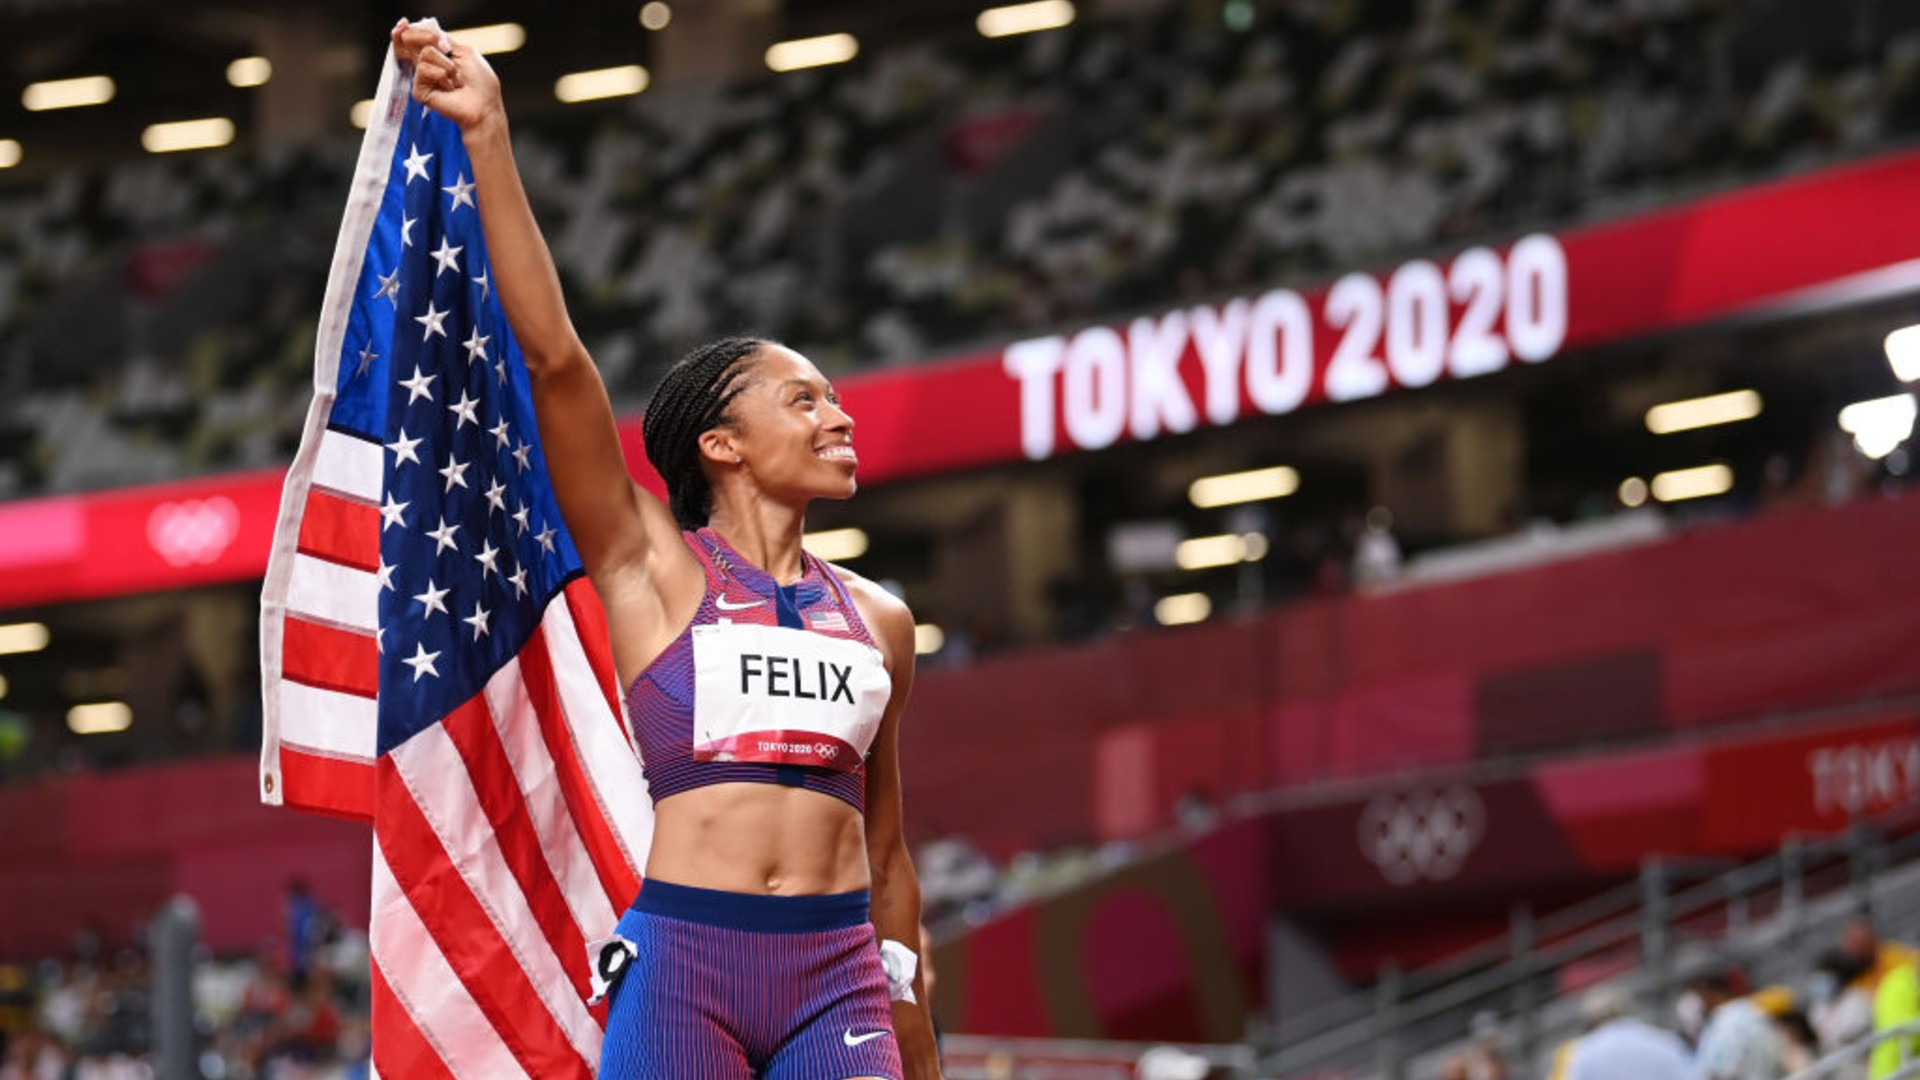 Allyson Felix of Team USA reacts after winning the bronze medal in the Women's 400m Final on day fourteen of the Tokyo 2020 Olympic Games at Olympic Stadium on August 06, 2021 in Tokyo, Japan. (Matthias Hangst/Getty Images)